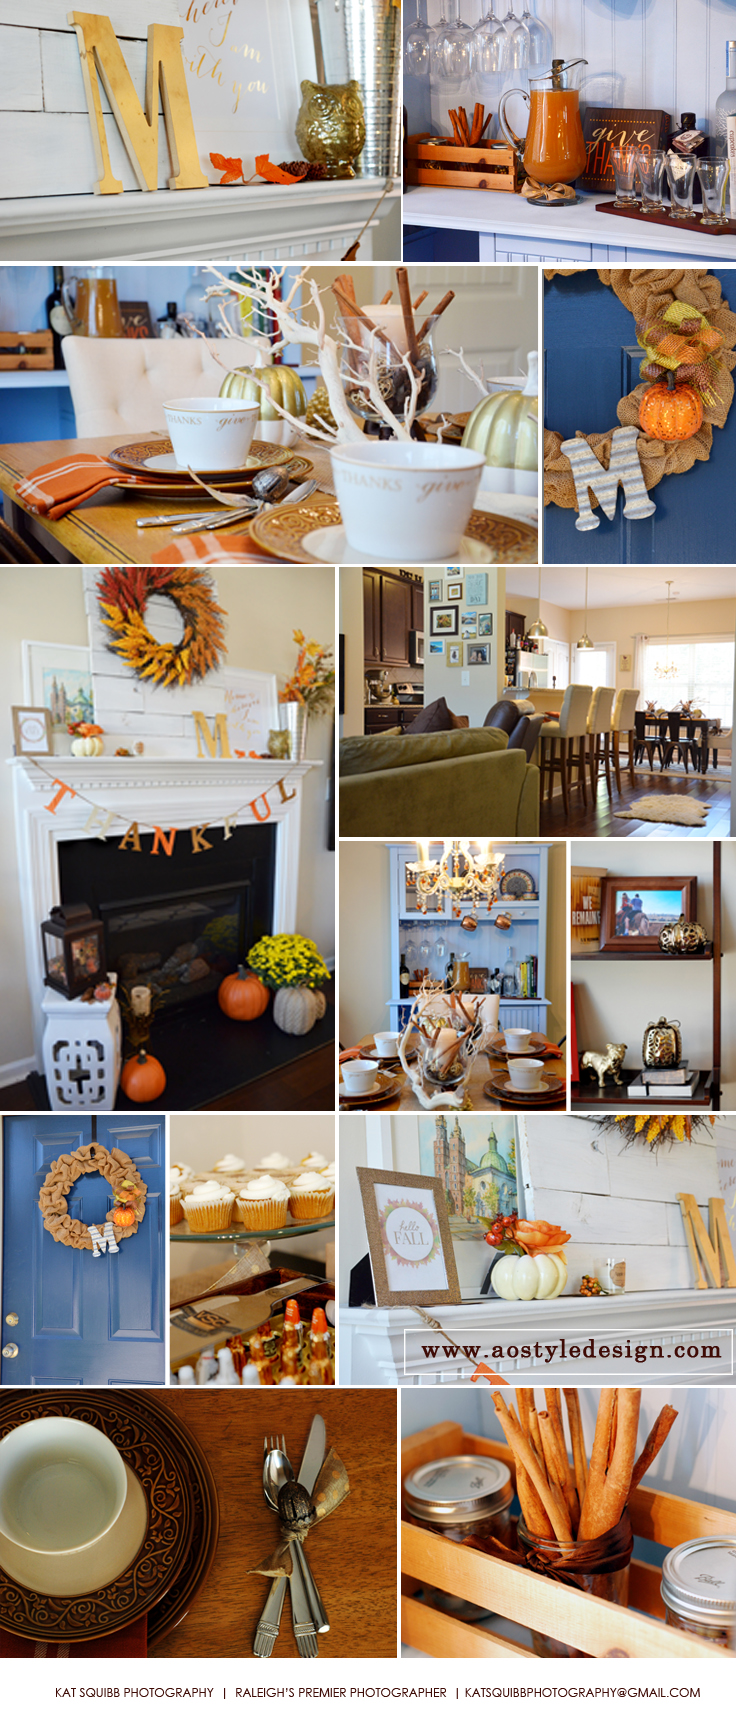 southern pines pinehurst raleigh fayetteville cary nc interior design fall inspiration photography photographer headshots weddings events